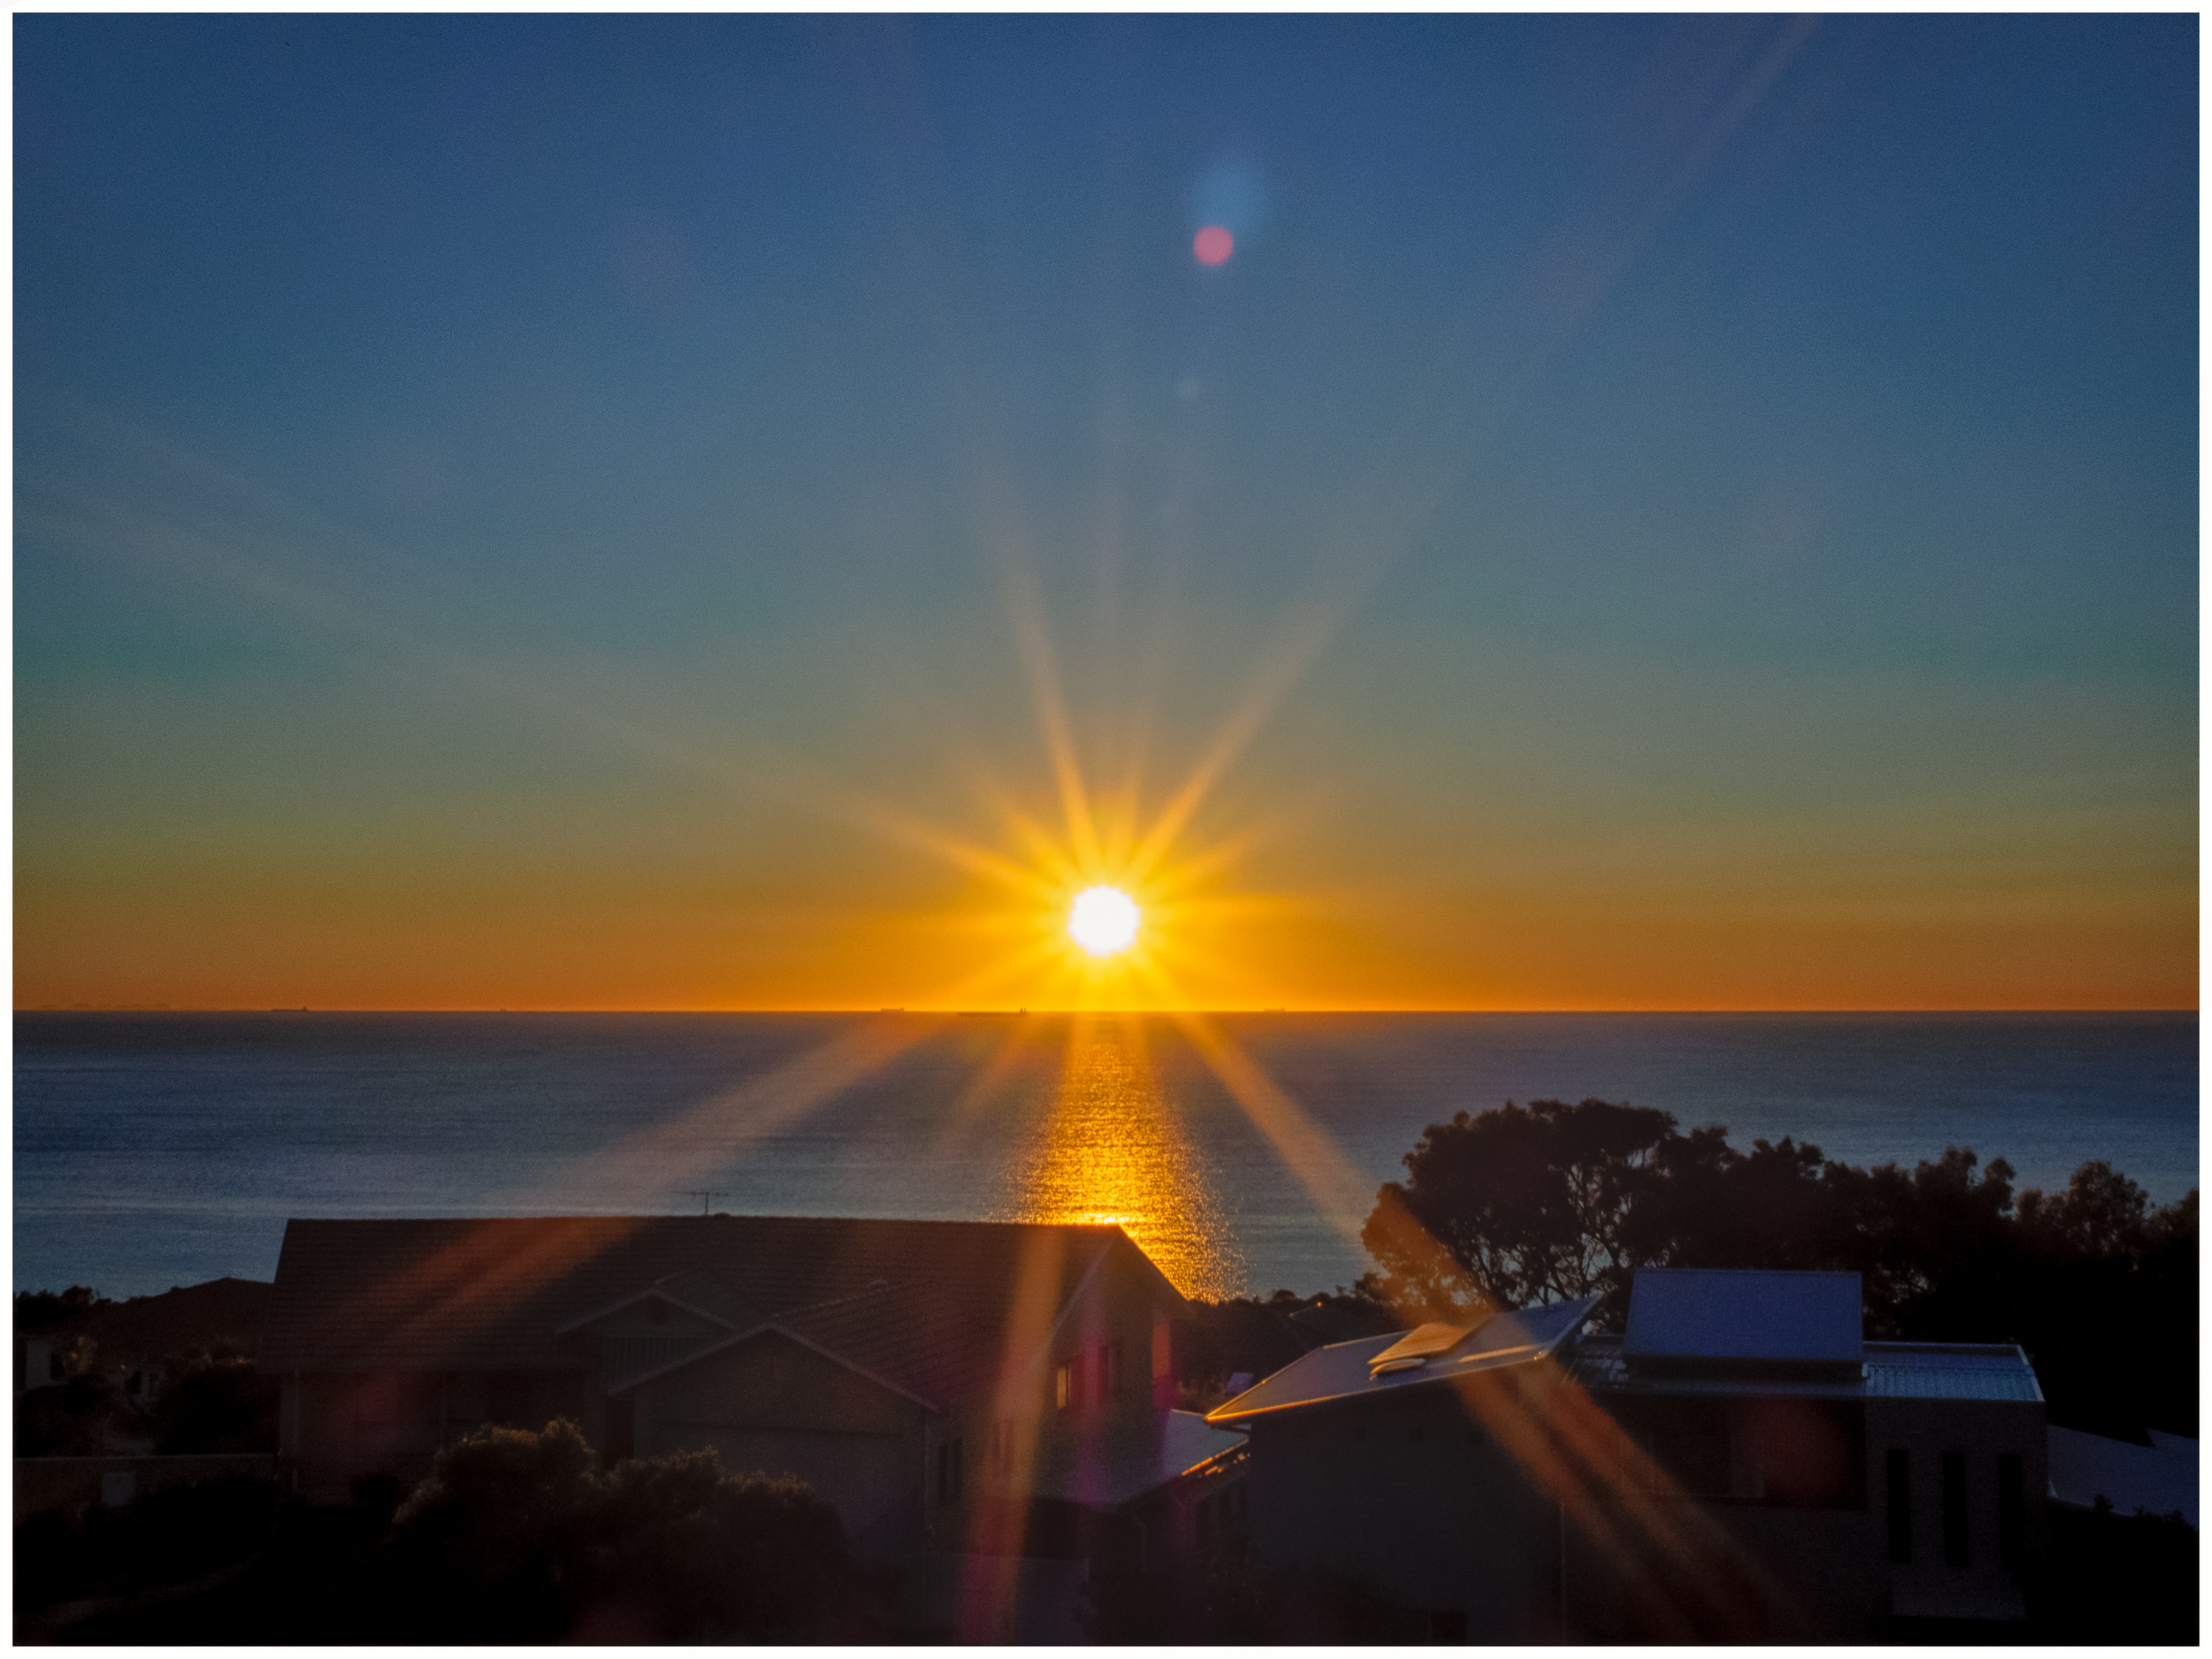 Sunrise 31/07/2014 | Shutter and Pen - Photography and Writing by CJ ...